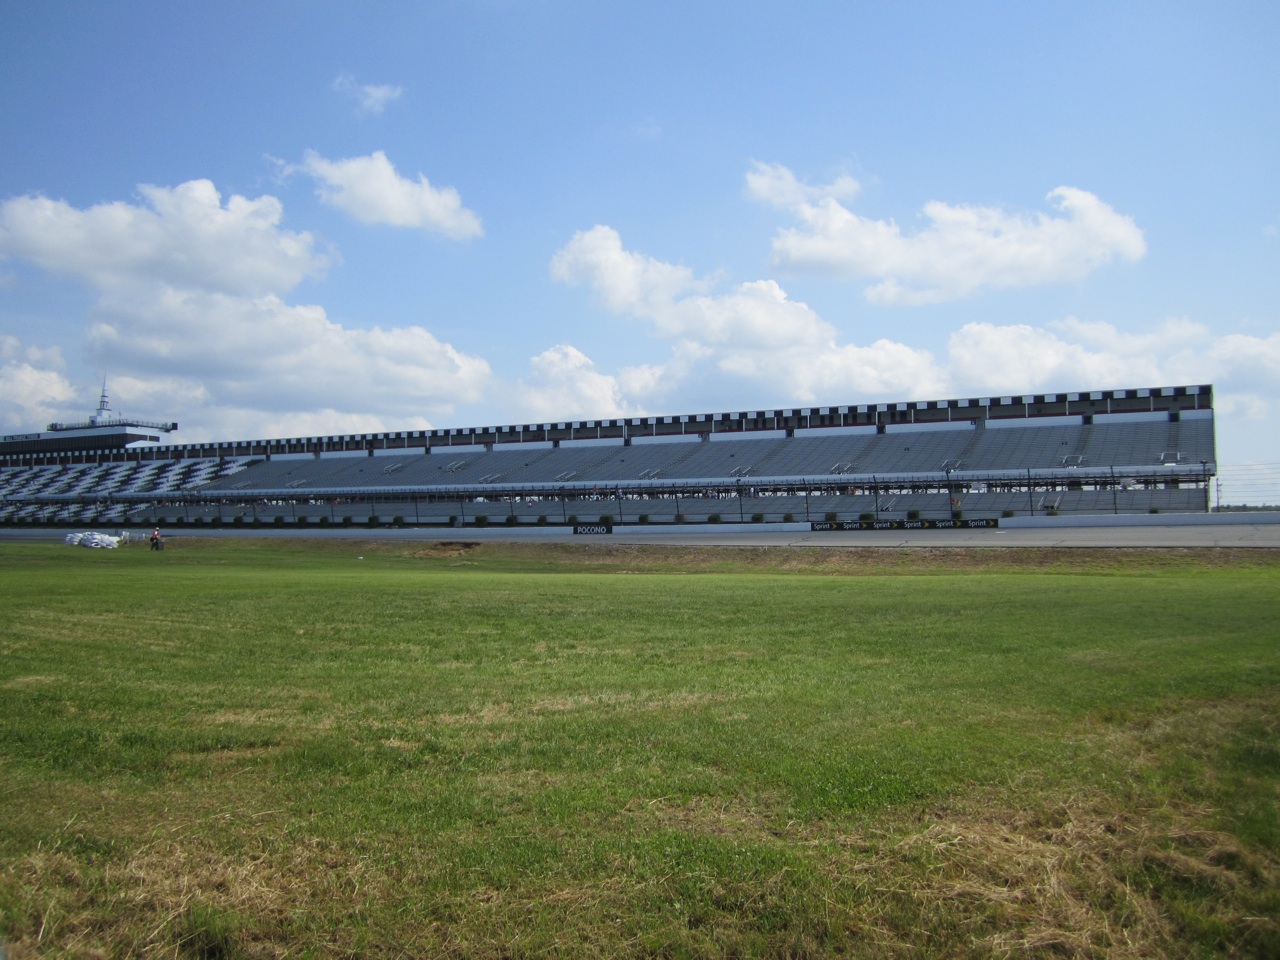 The Pocono Raceway Looking At Empty Bleachers, The Day Before The Race.